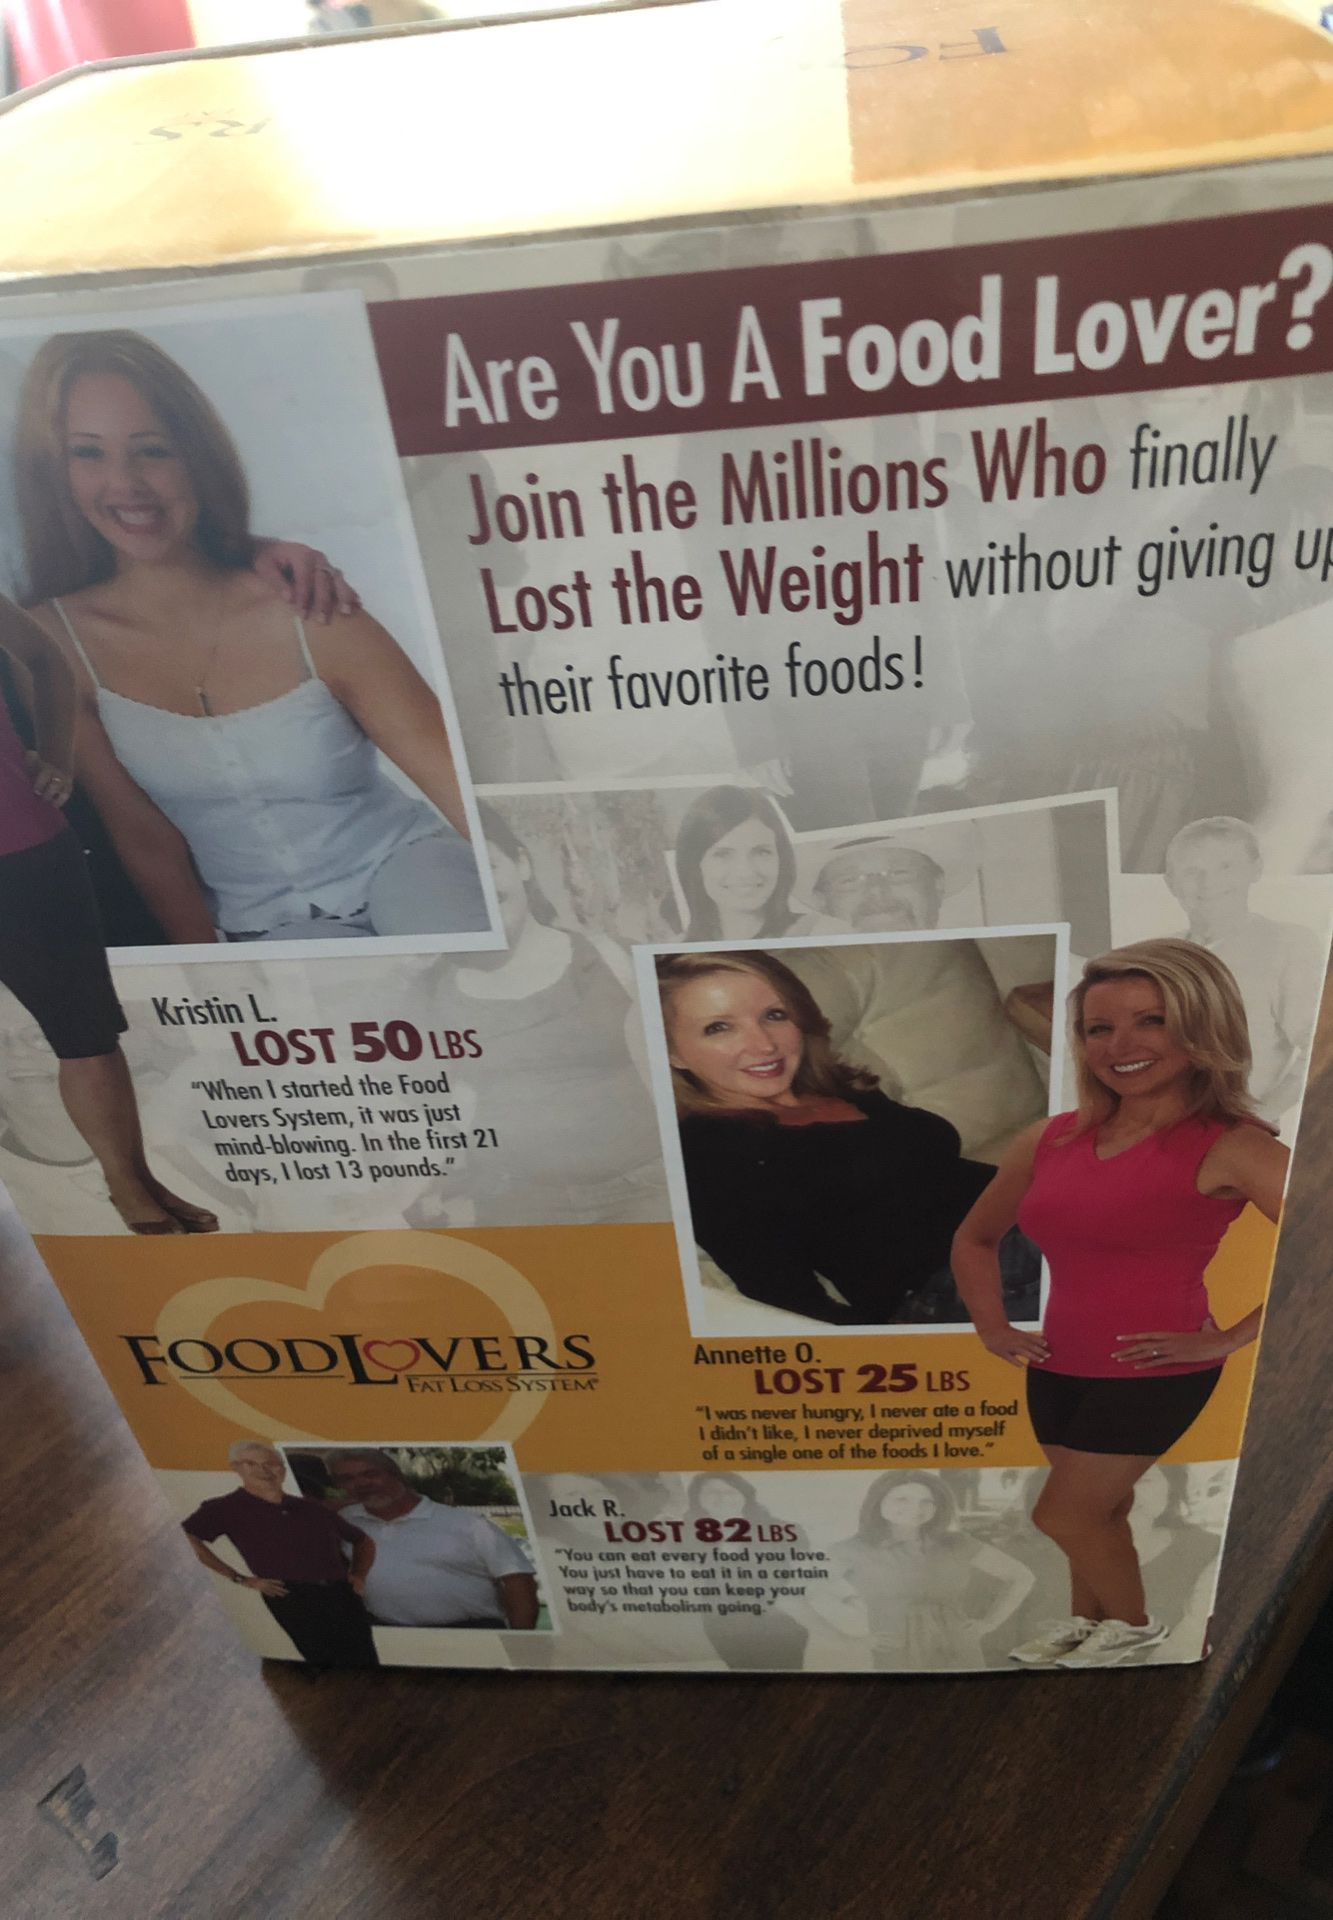 Food lovers weight loss system still in the box mint condition NEVER opened